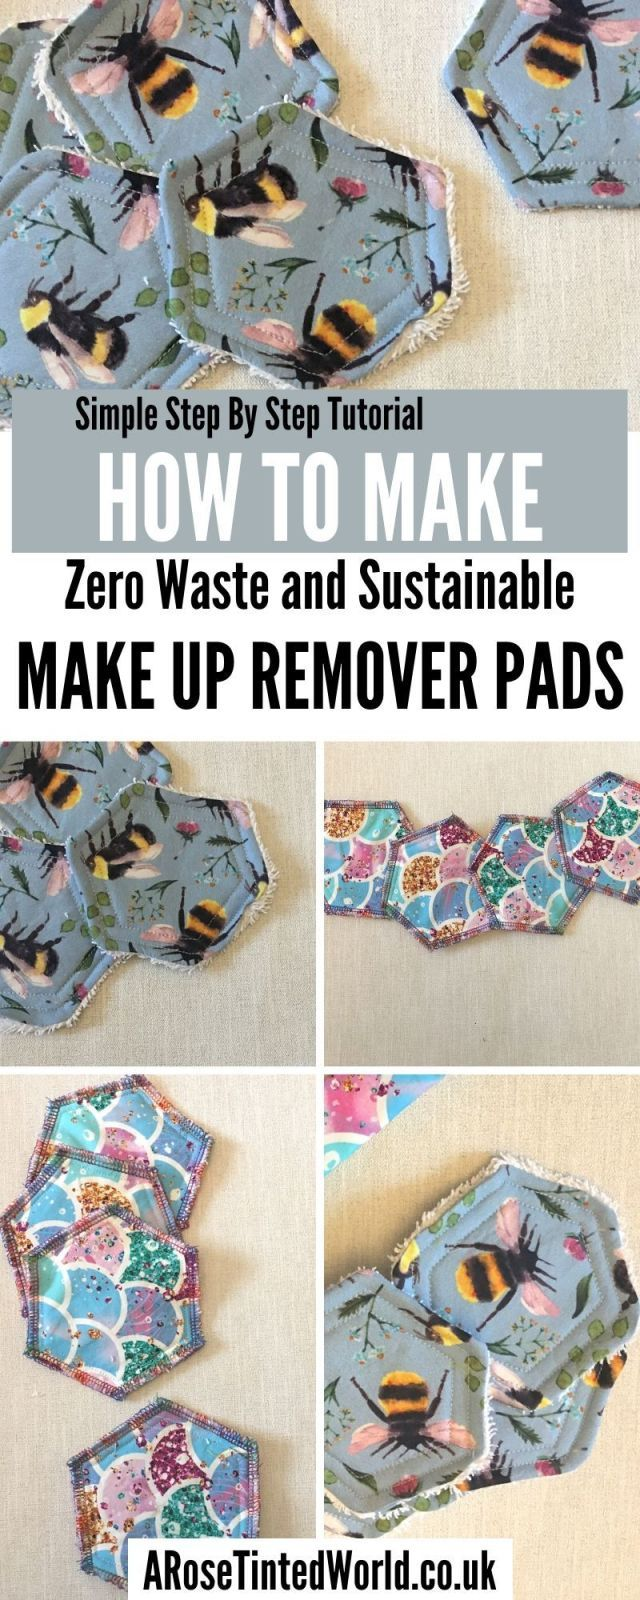 How To Make Reusable Make Up Remover Pads ⋆ A Rose Tinted World